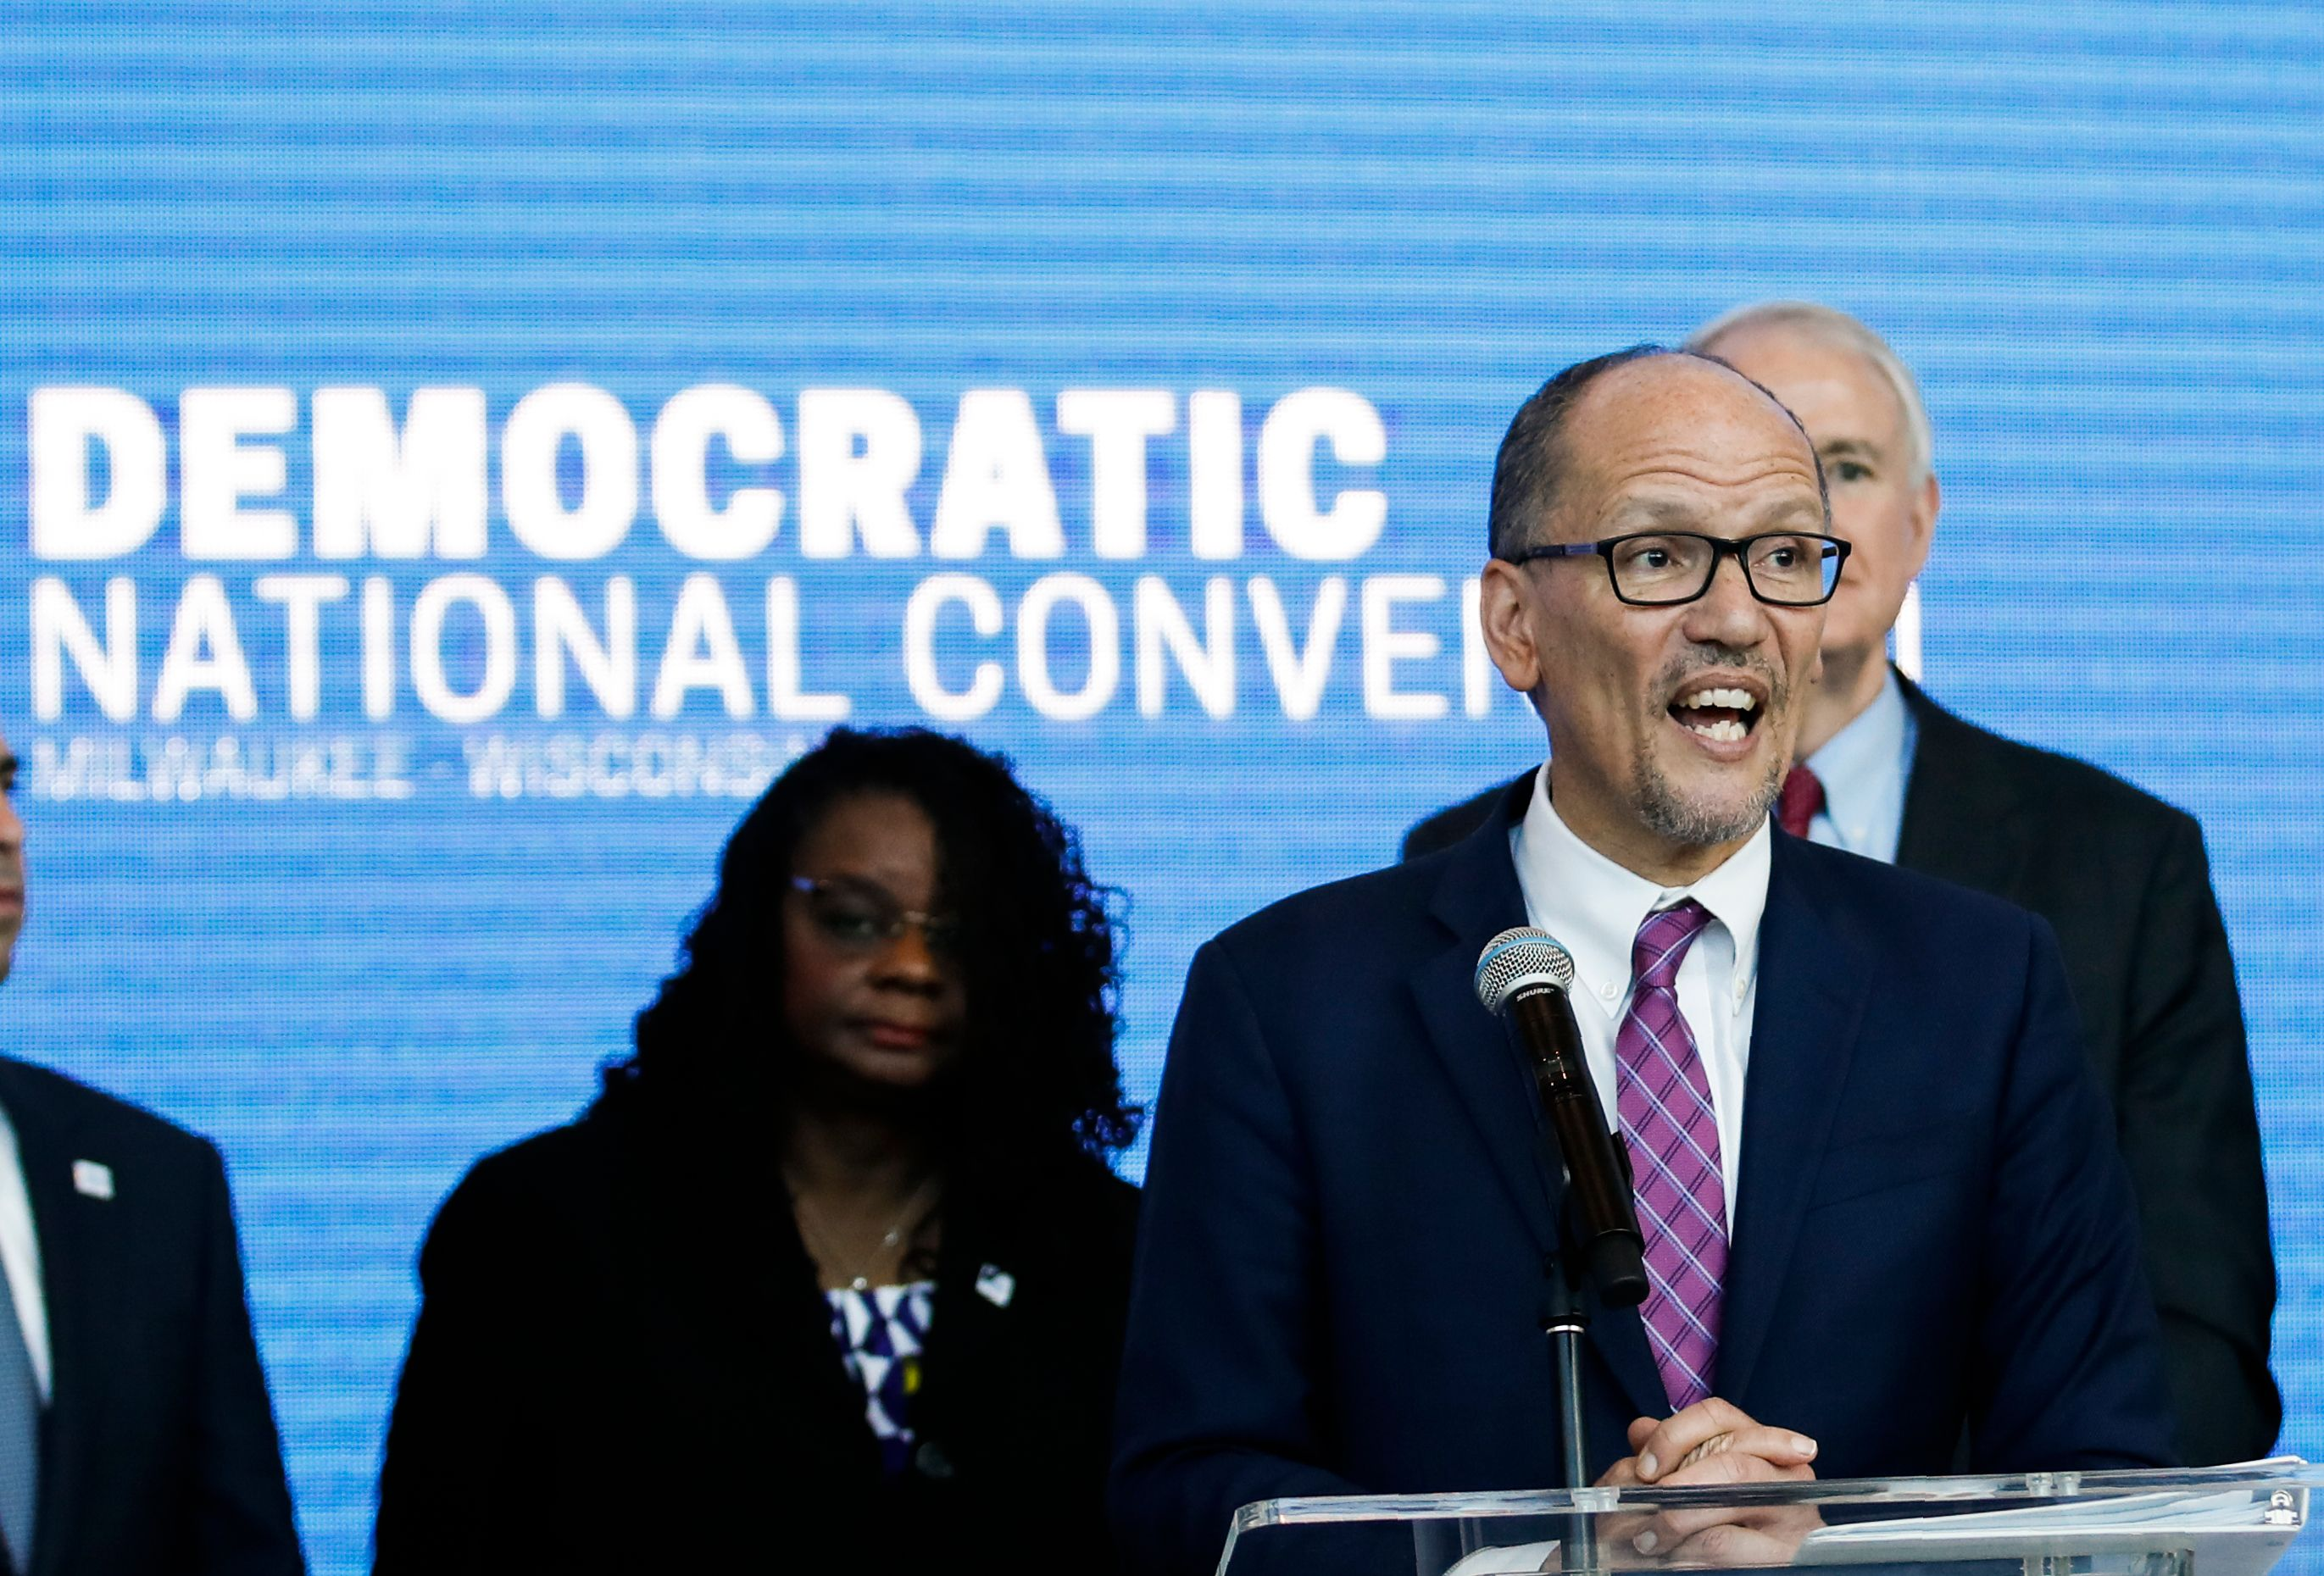 Chair of the Democratic National Committee Tom Perez speaks during a press conference at the Fiserv Forum in Milwaukee, Wisconsin on March 11, 2019, to announce the selection of Milwaukee as the 2020 Democratic National Convention host city. (KAMIL KRZACZYNSKI/AFP via Getty Images)